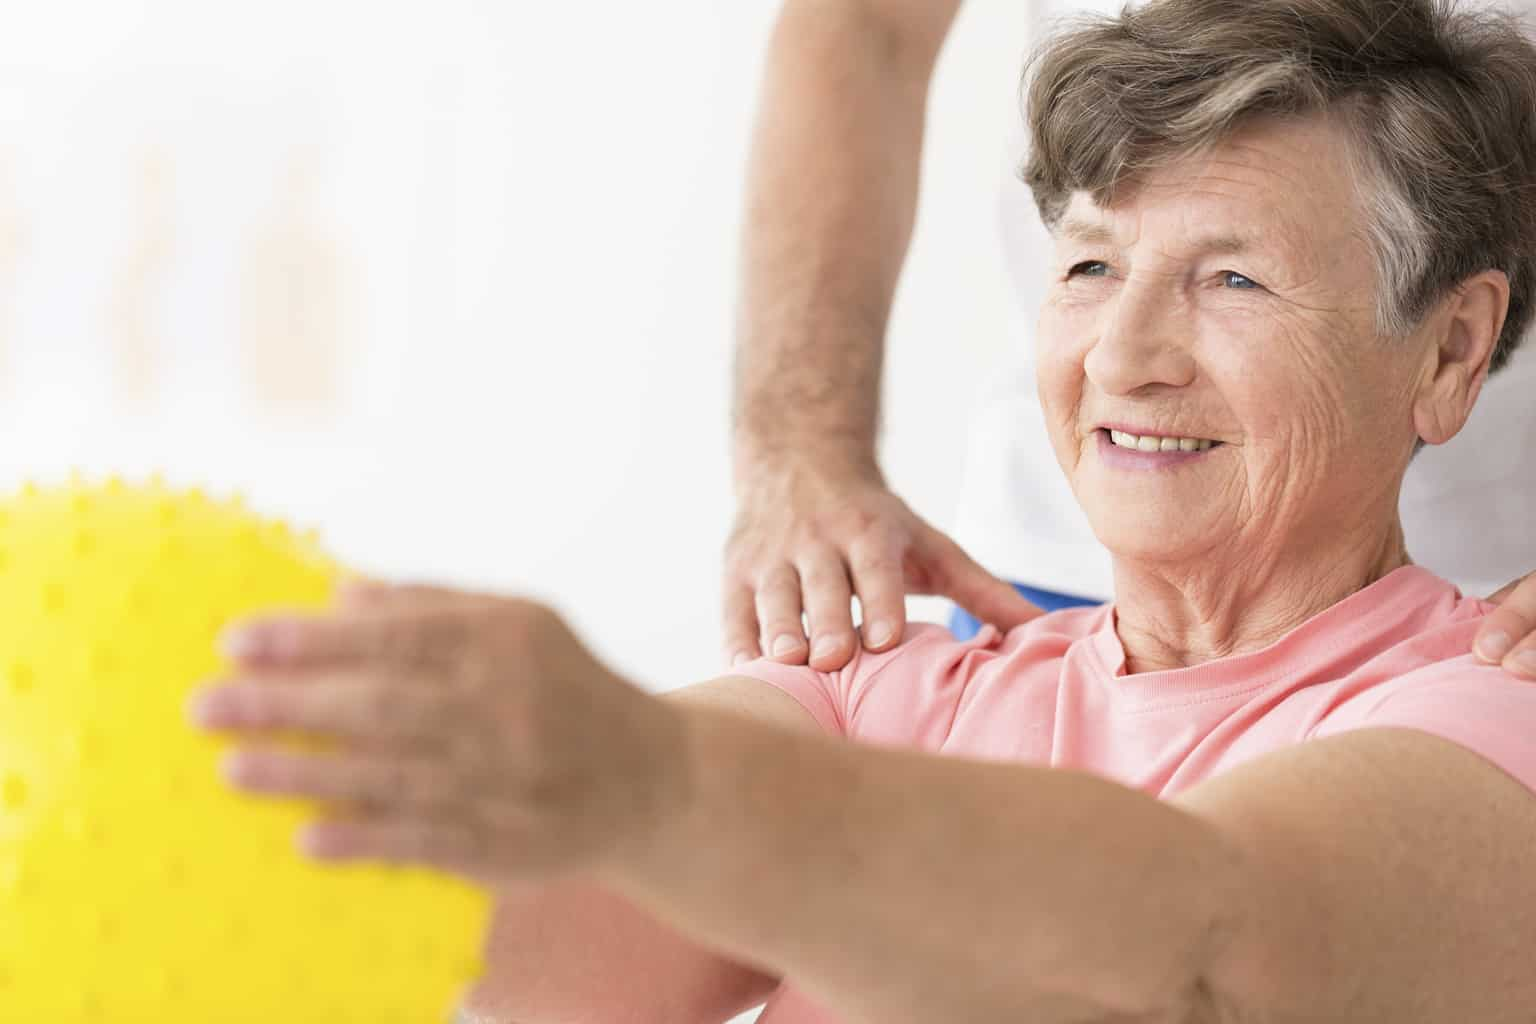 A close-up portrait of an elderly woman holding a ball in physiotherapy with doctor's hands on her shoulders